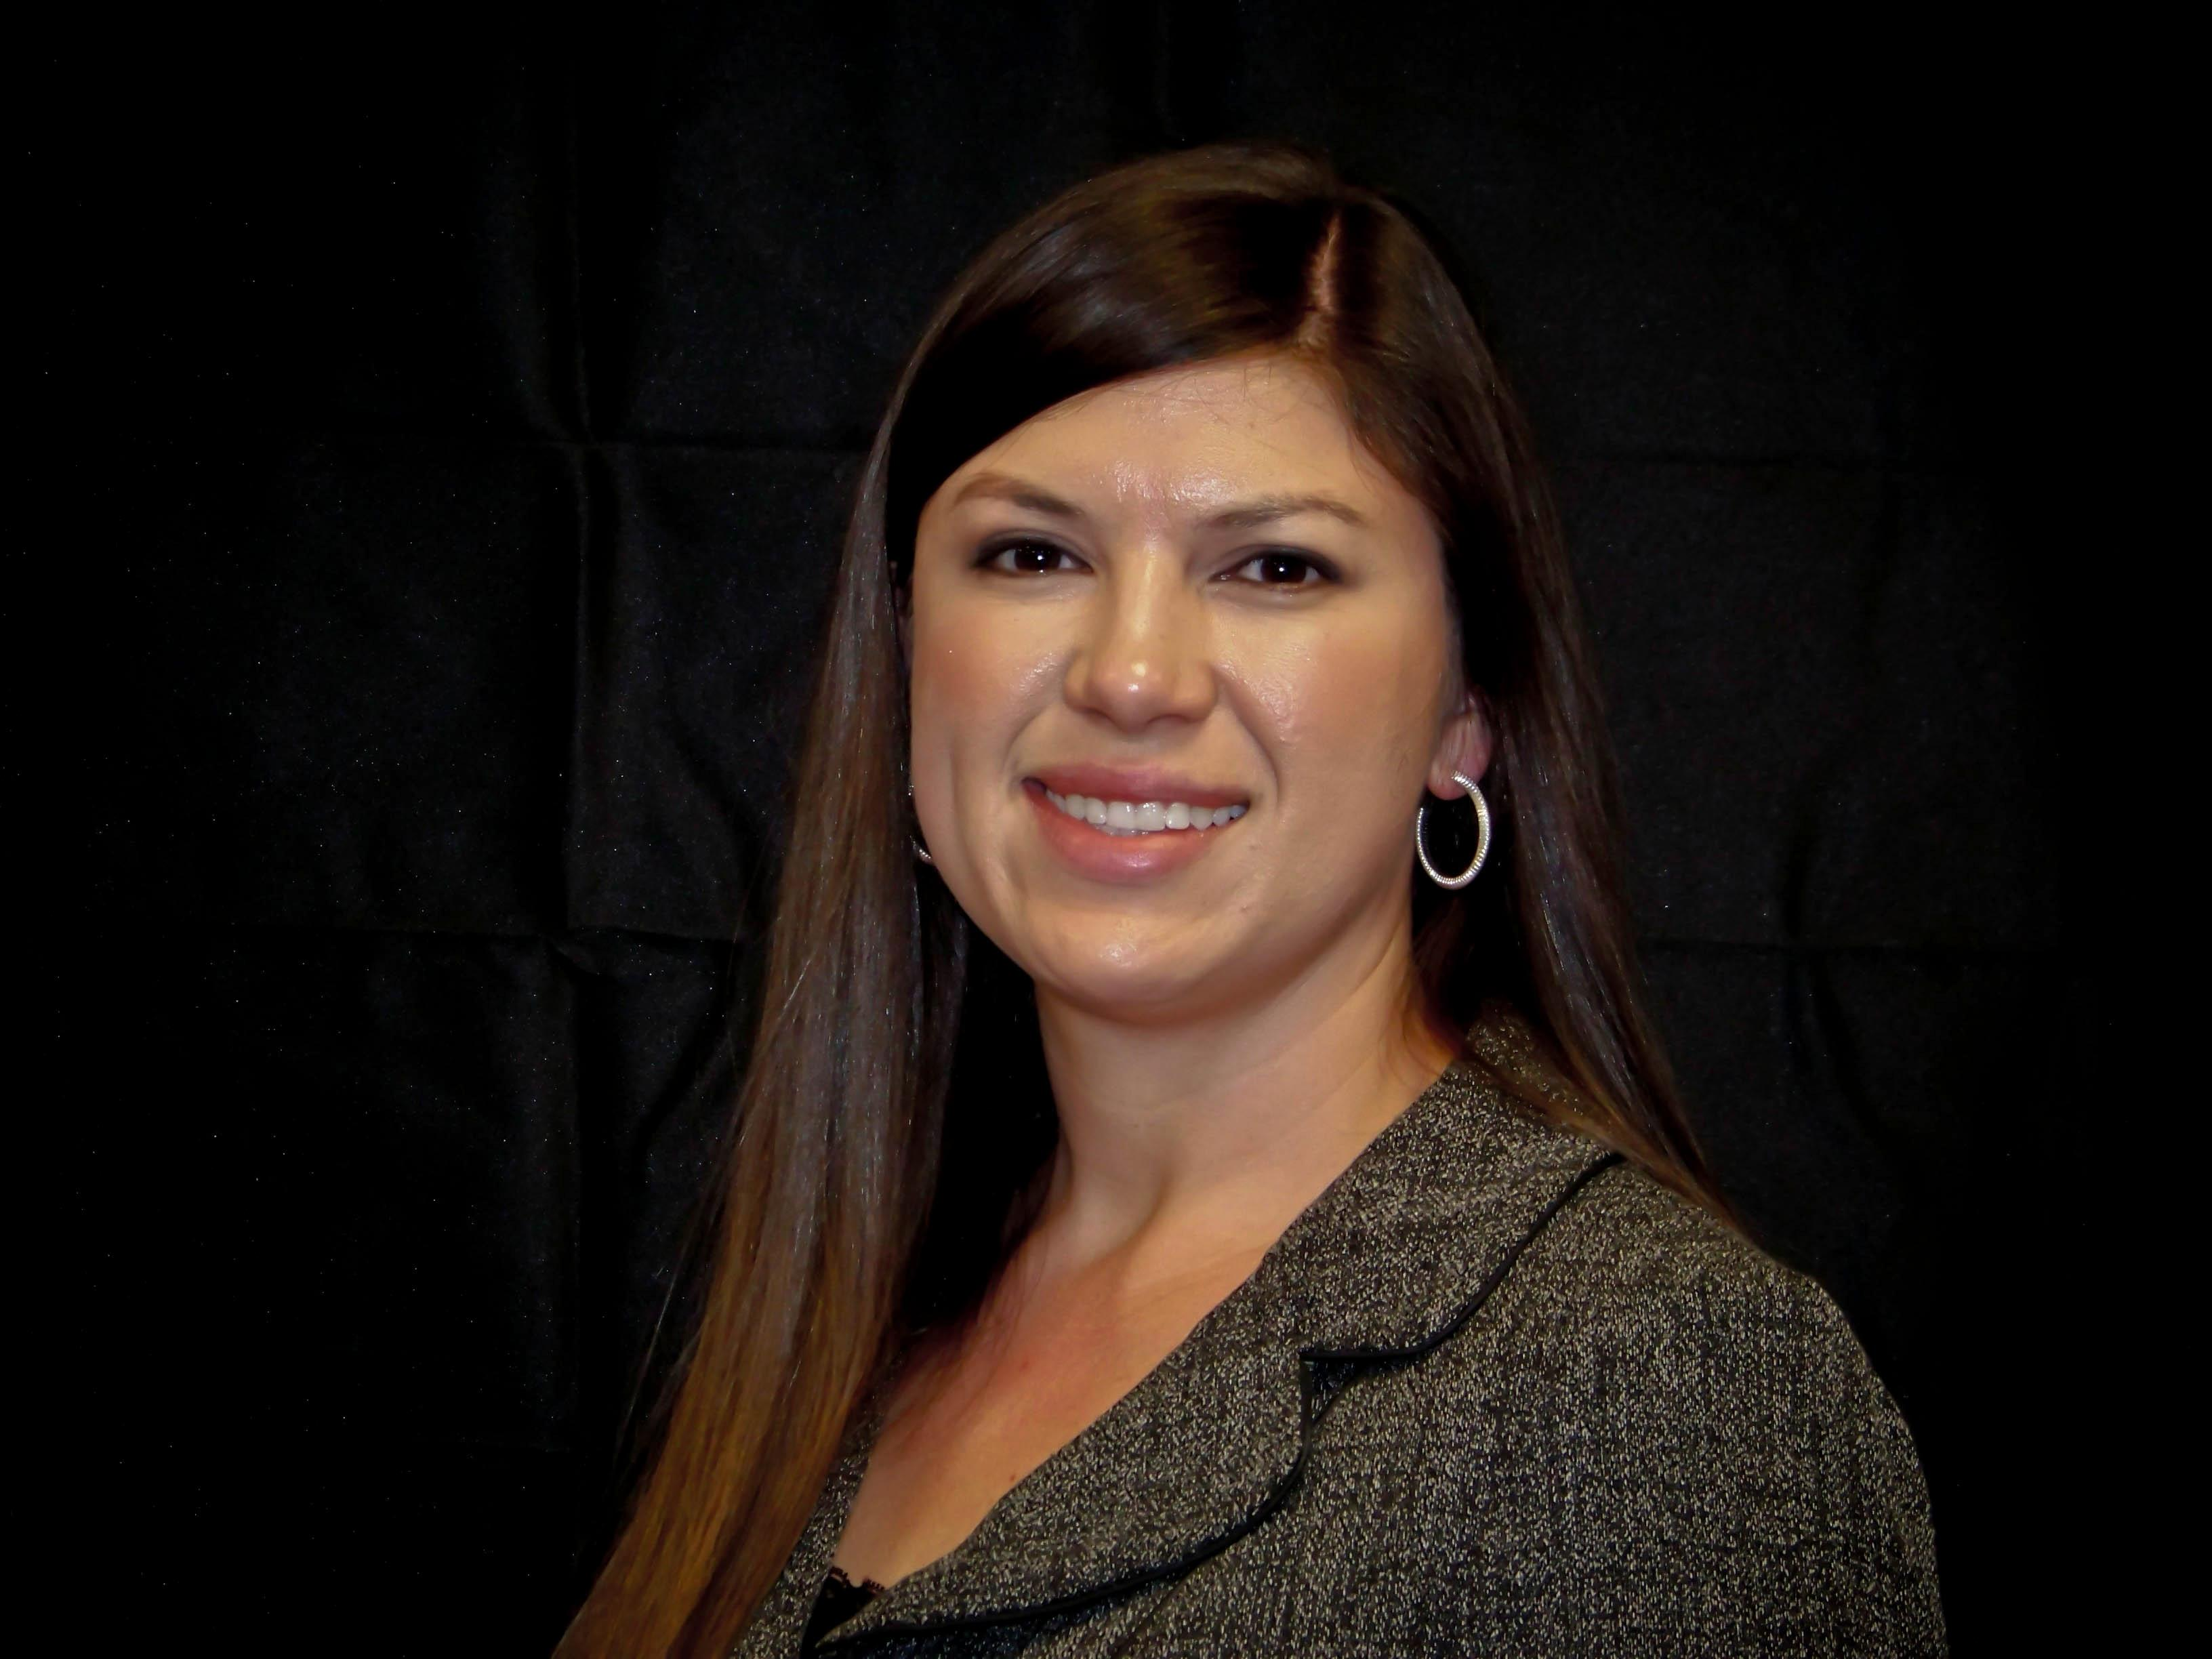 LEAH ANNE PLOTZ Financial Professional & Insurance Agent